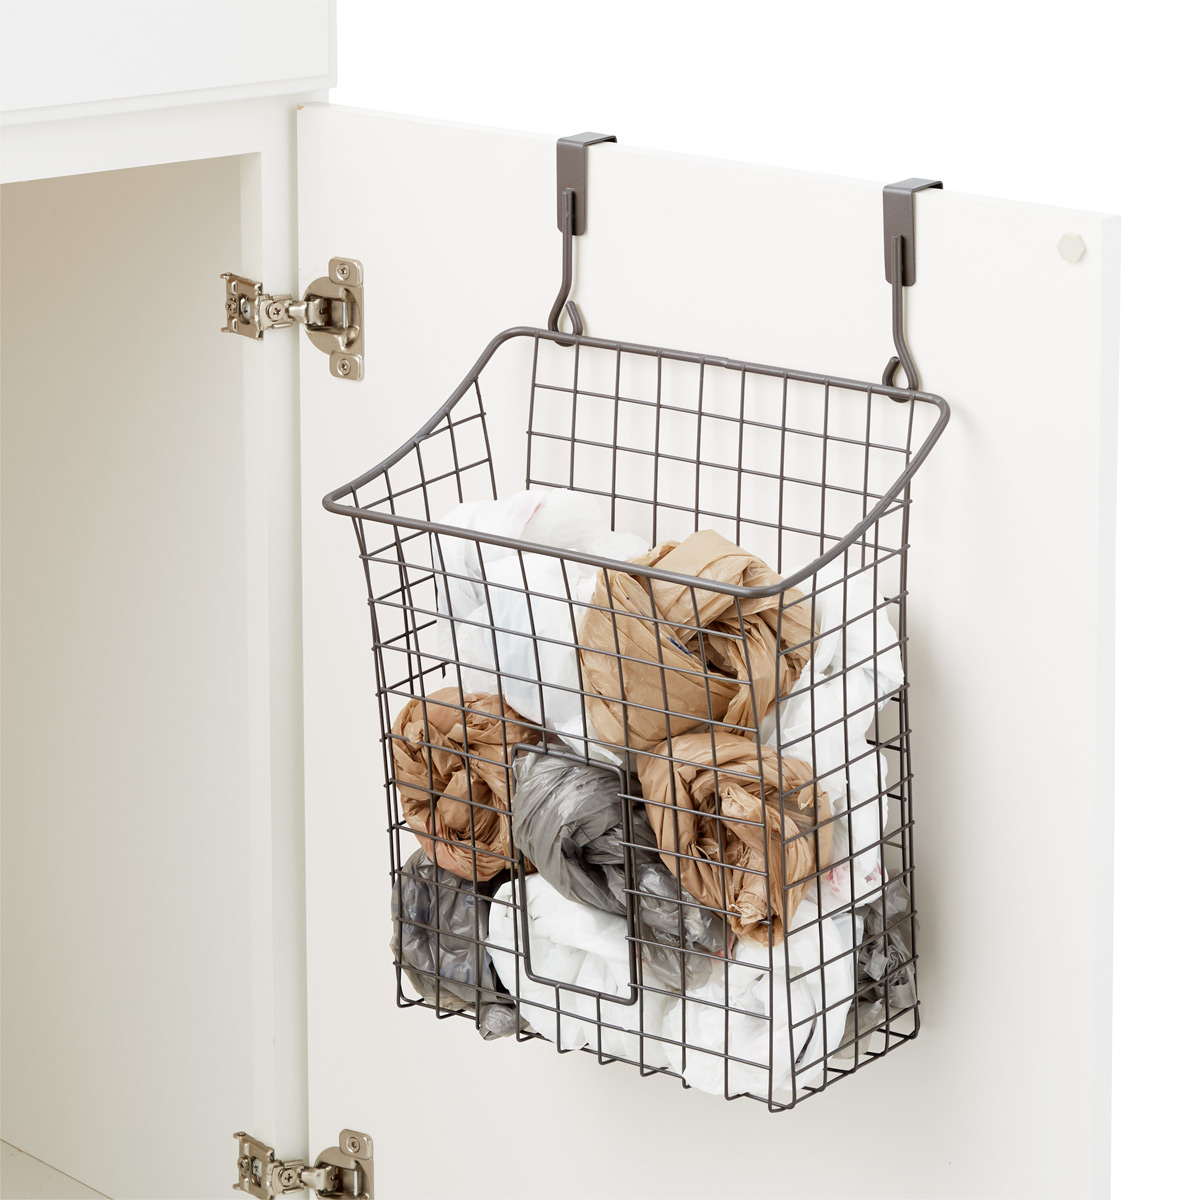 Over the Cabinet Grid Recycling Bag Holder